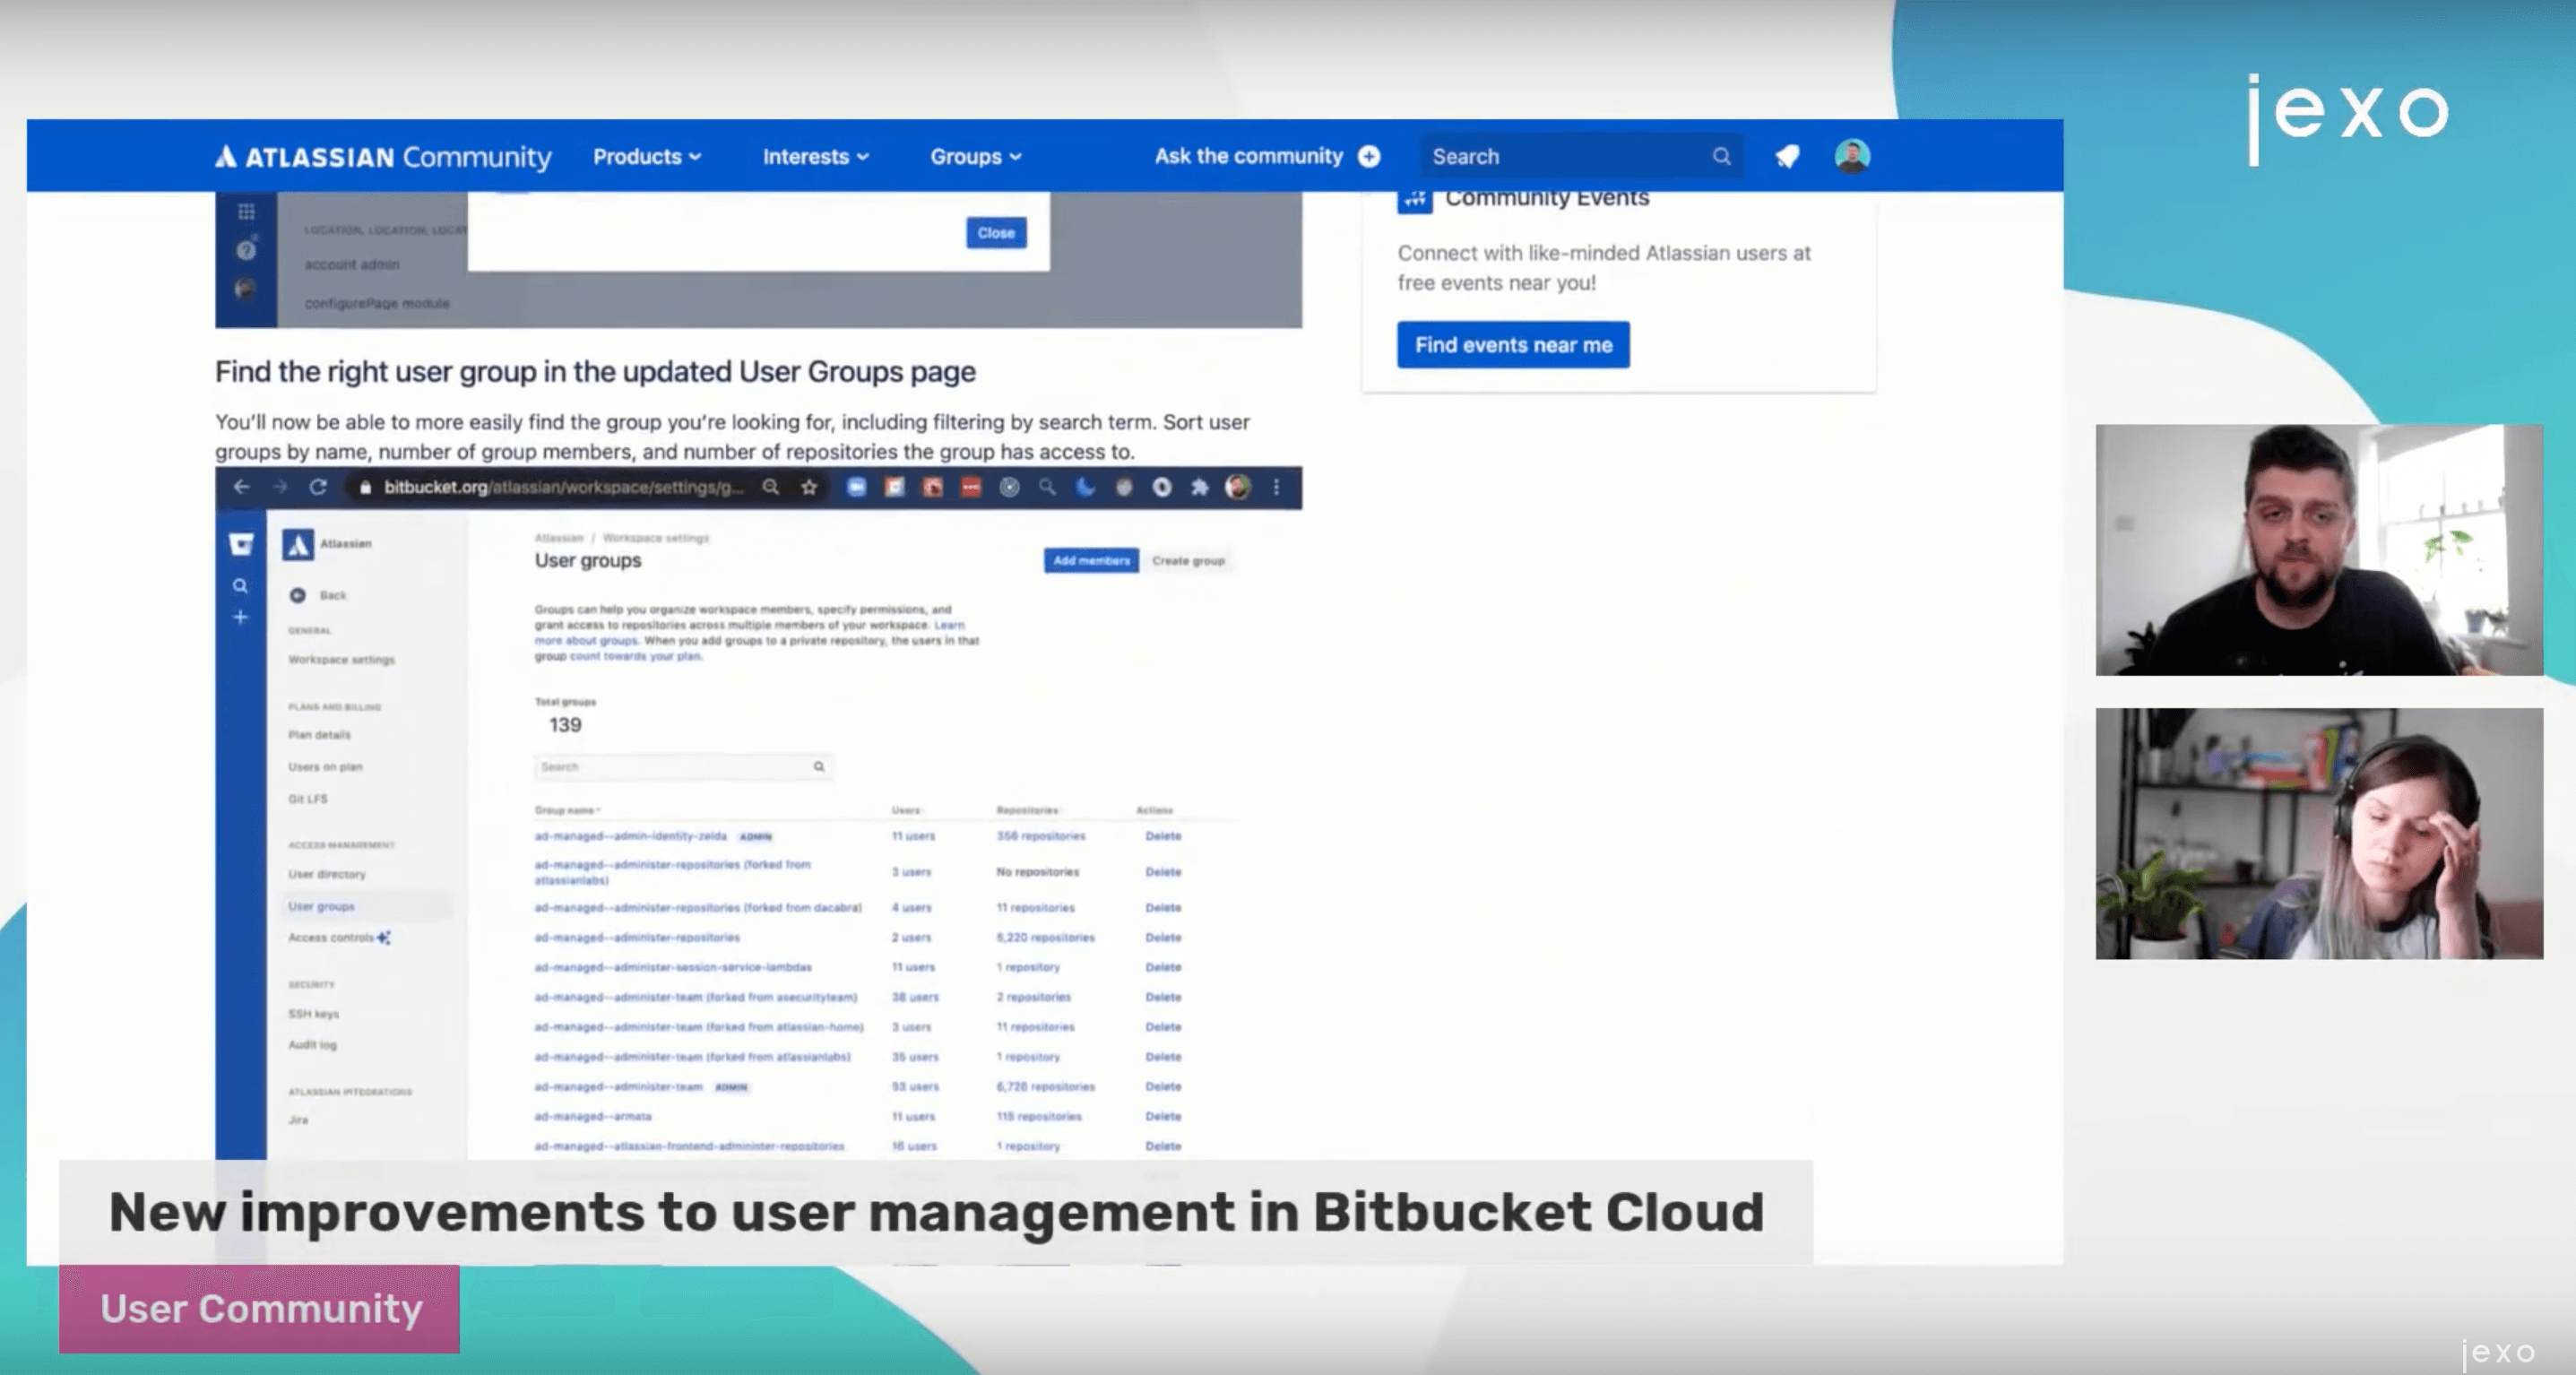 New improvements to the User Administration page on Bitbucket.